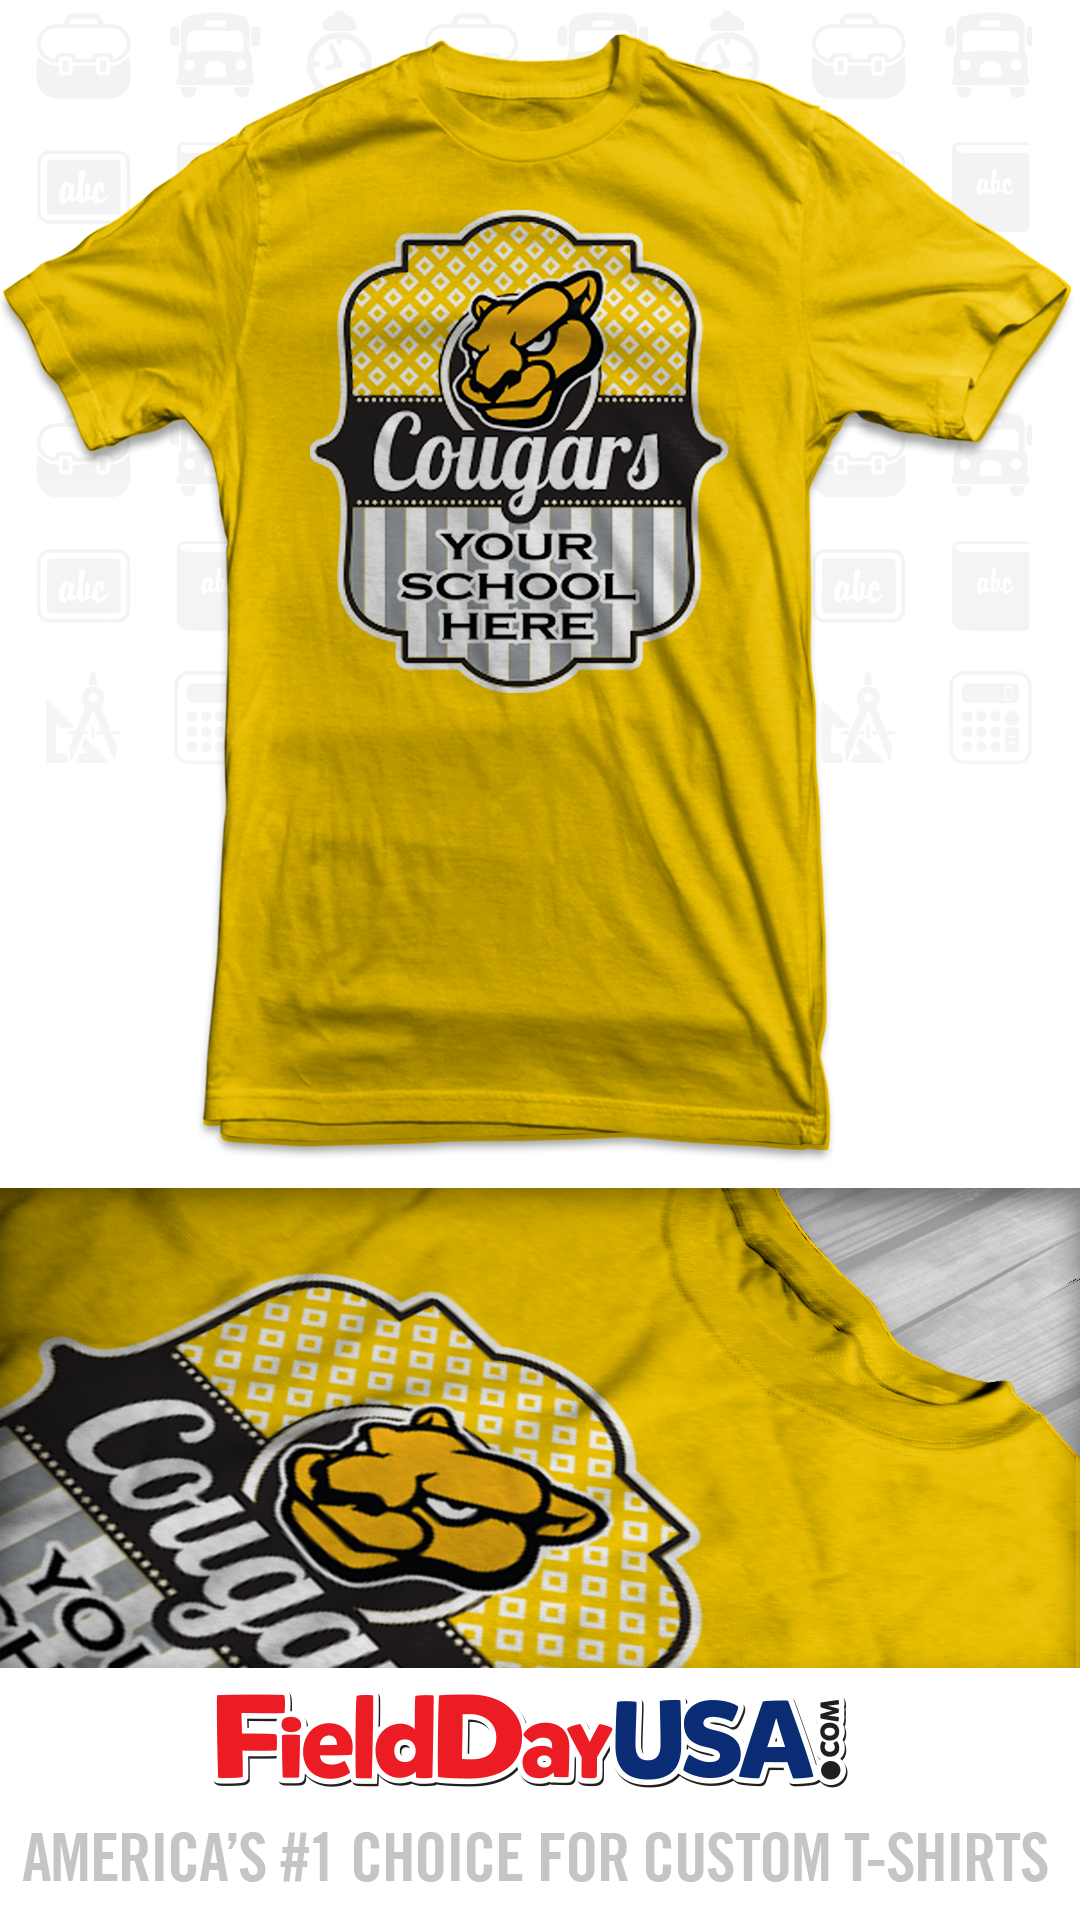 6f70819fb175 School Mascot T-shirt MAS16-08 | School Mascot T-shirt Designs ...